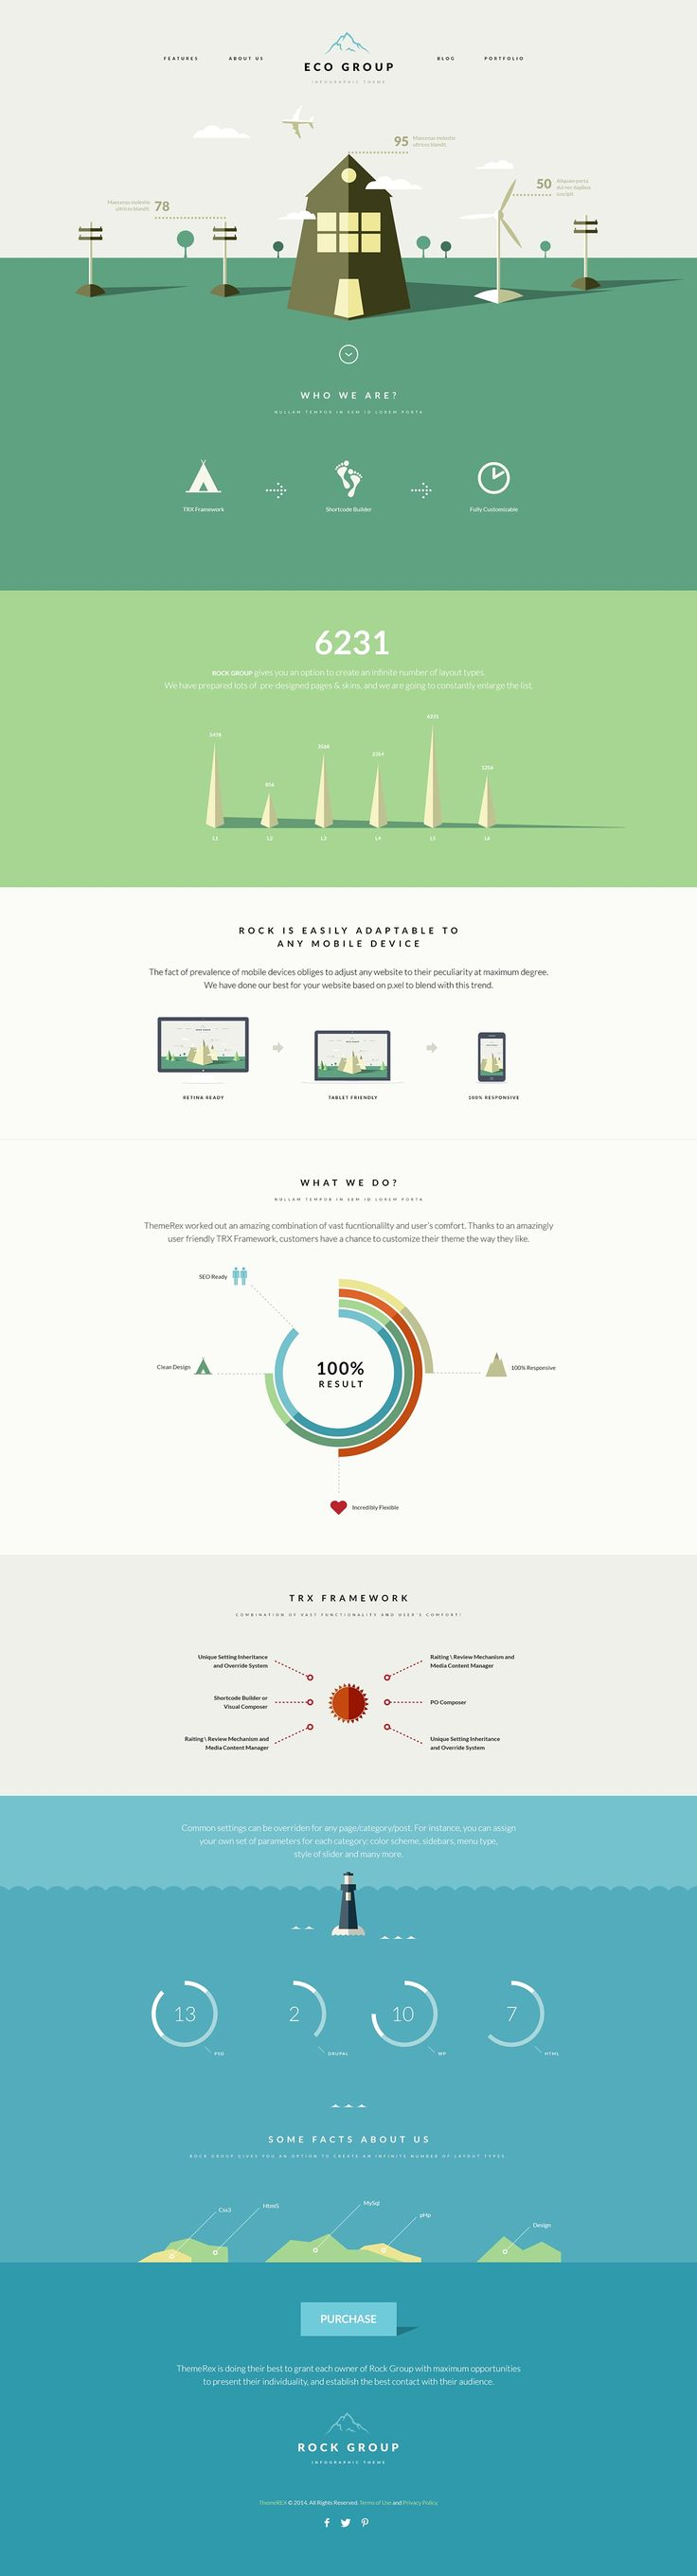 https://www.behance.net/gallery/21428203/Rock-Group-Multipurpose-Infographic-Theme